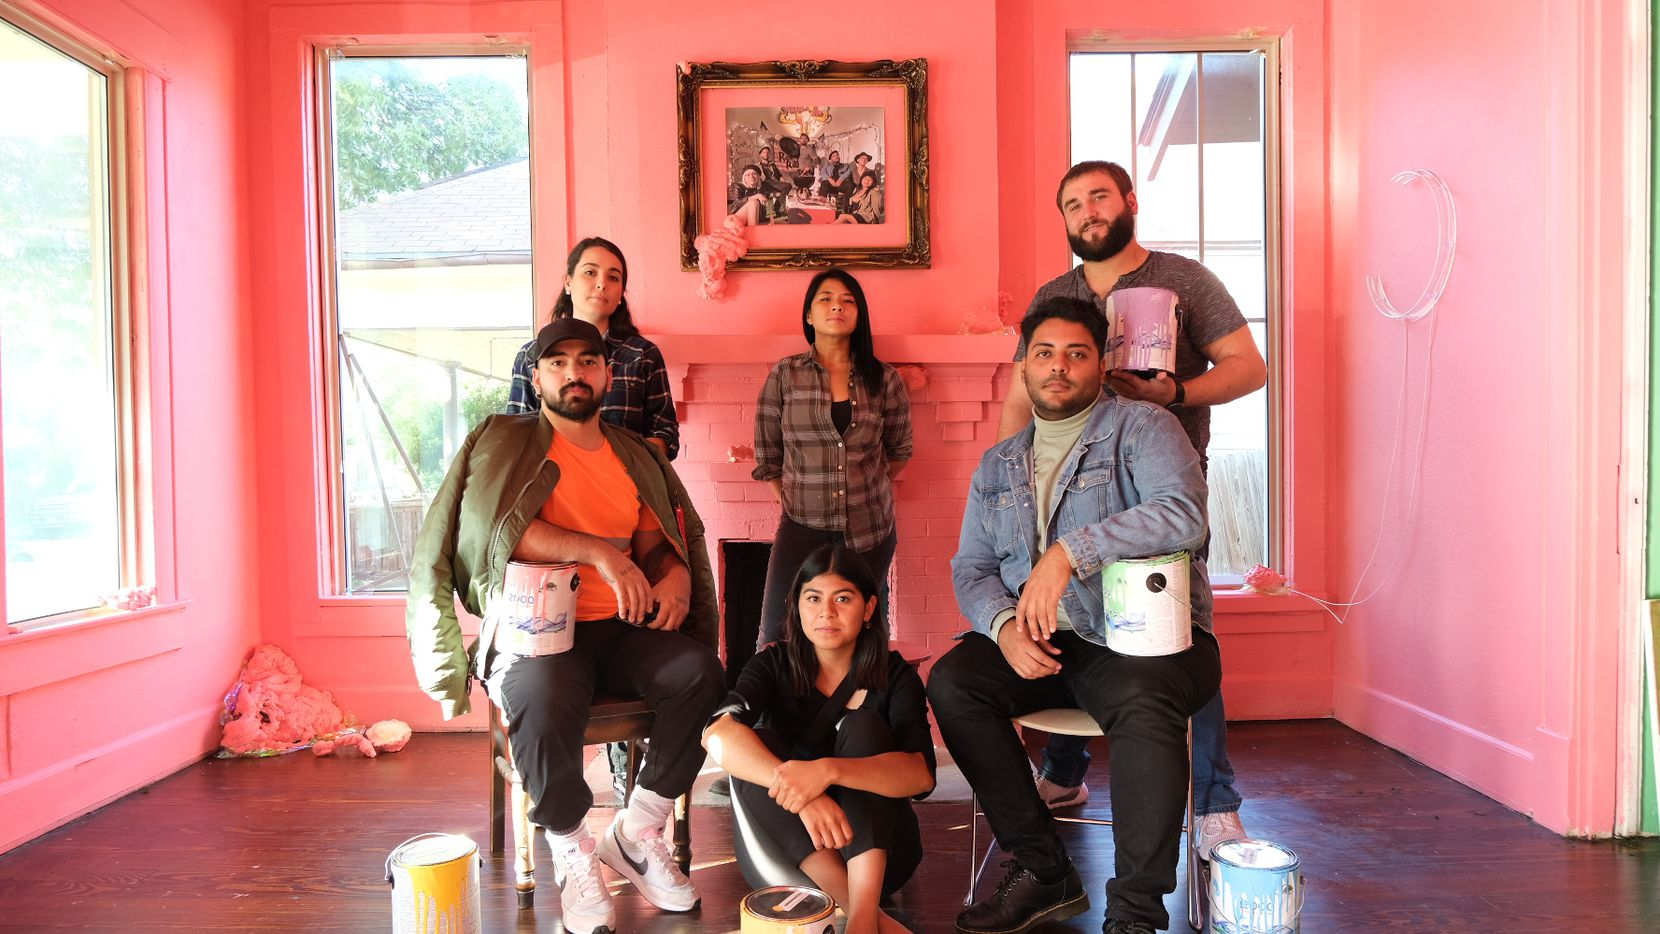 A group of local queer artists formed a collective called Third Space DFW in 2019. The collective seeks to fill the lack of LGBTQ representation in Fort Worth's art scene and provide a safe and public platform for queer artists in the area. Top row, from left to right: Norma Gonzalez, Kim Nguyen and Brad Westerman. Bottom row, from left to right: Antonio Mercado Sindy Mata and Christopher Najera.